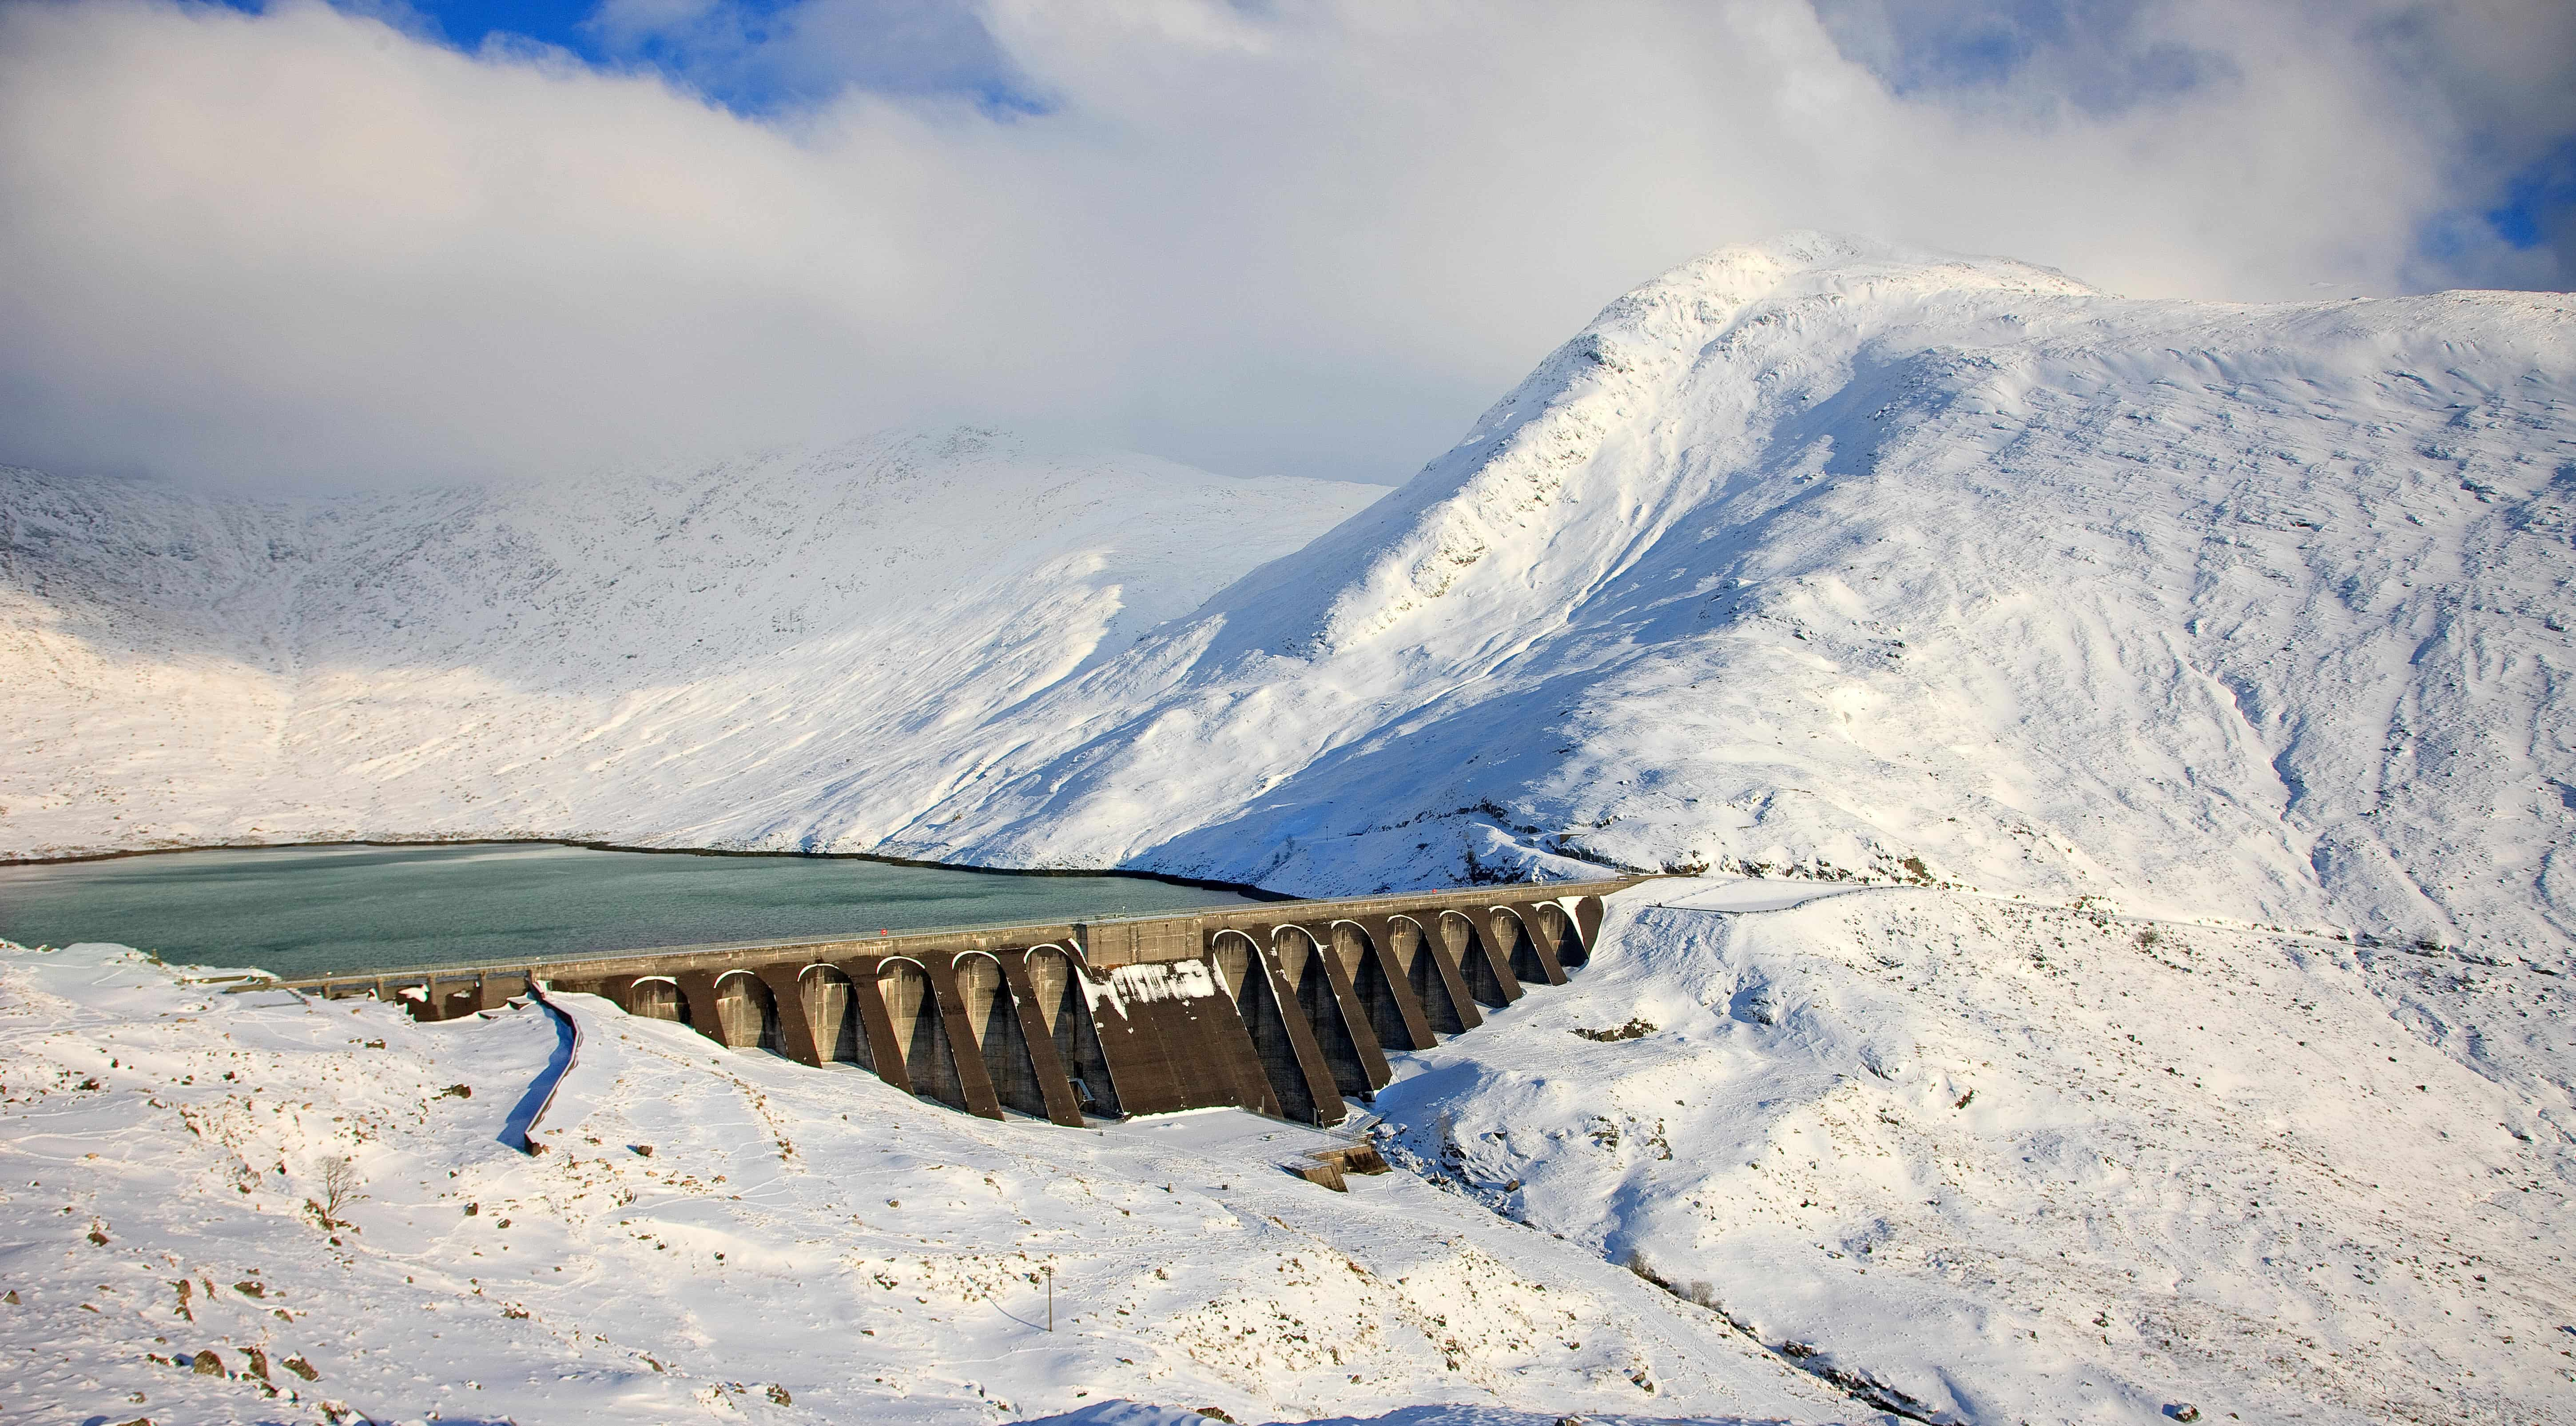 The hydro-electric dam on the slopes of Ben Cruachan.